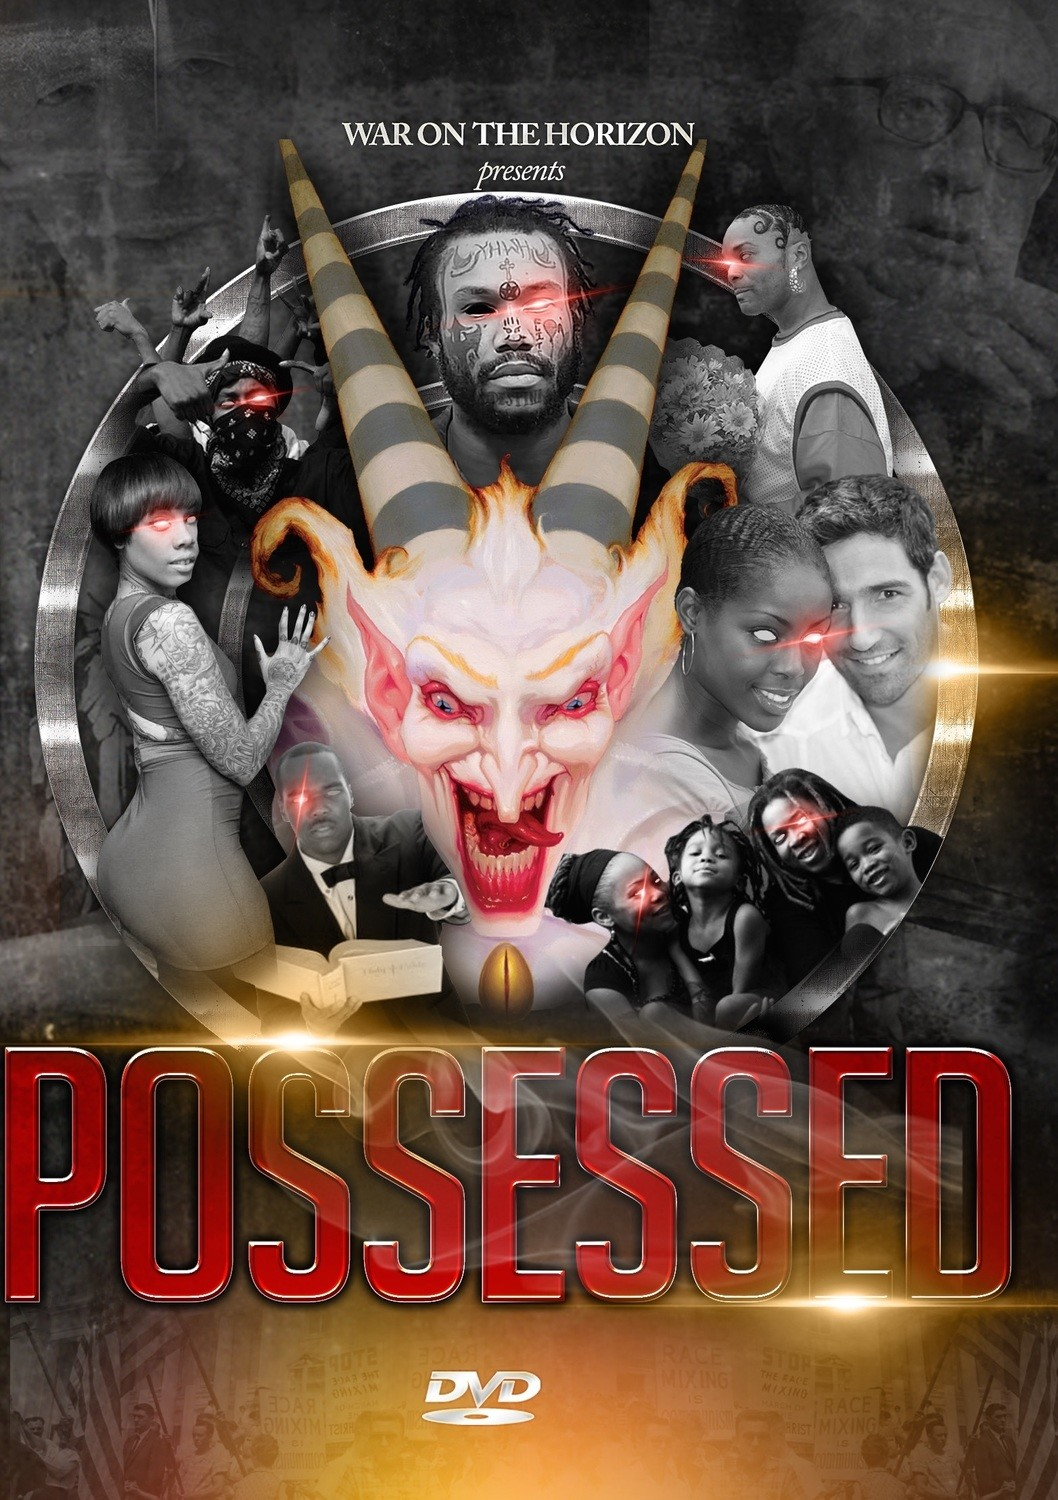 Possessed - .mp4 Electronic Email Version